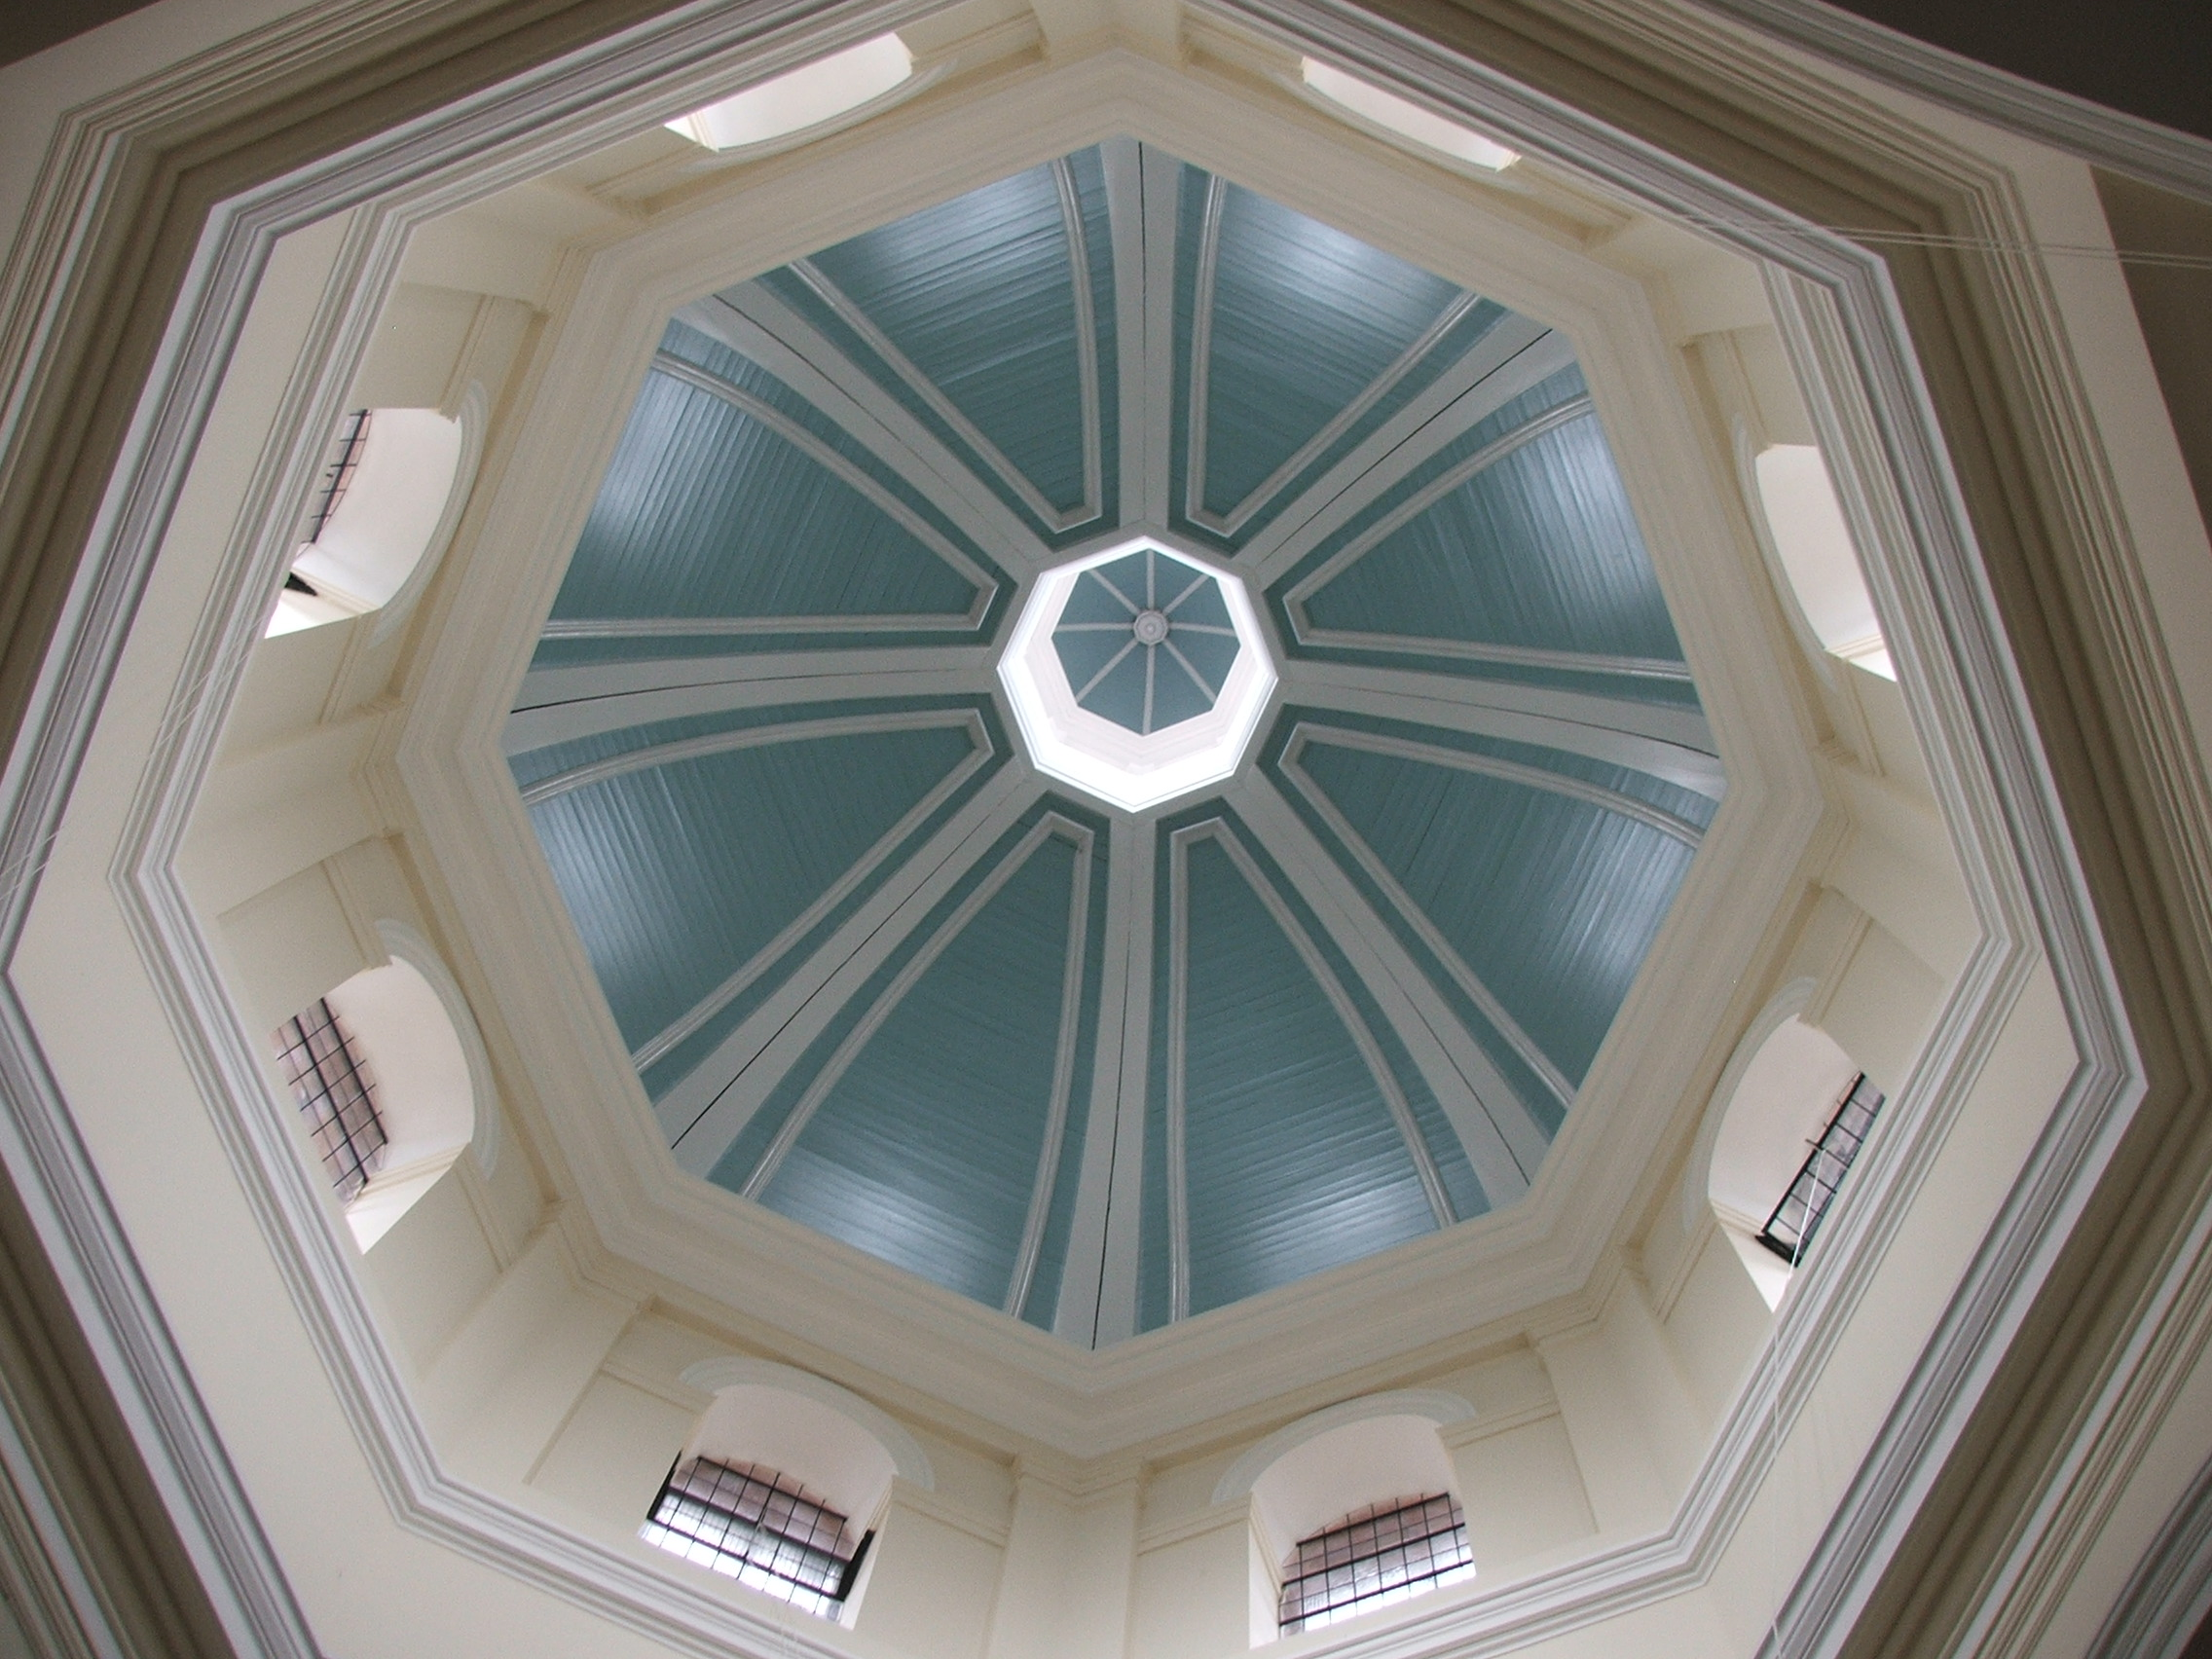 The newly refurbished dome